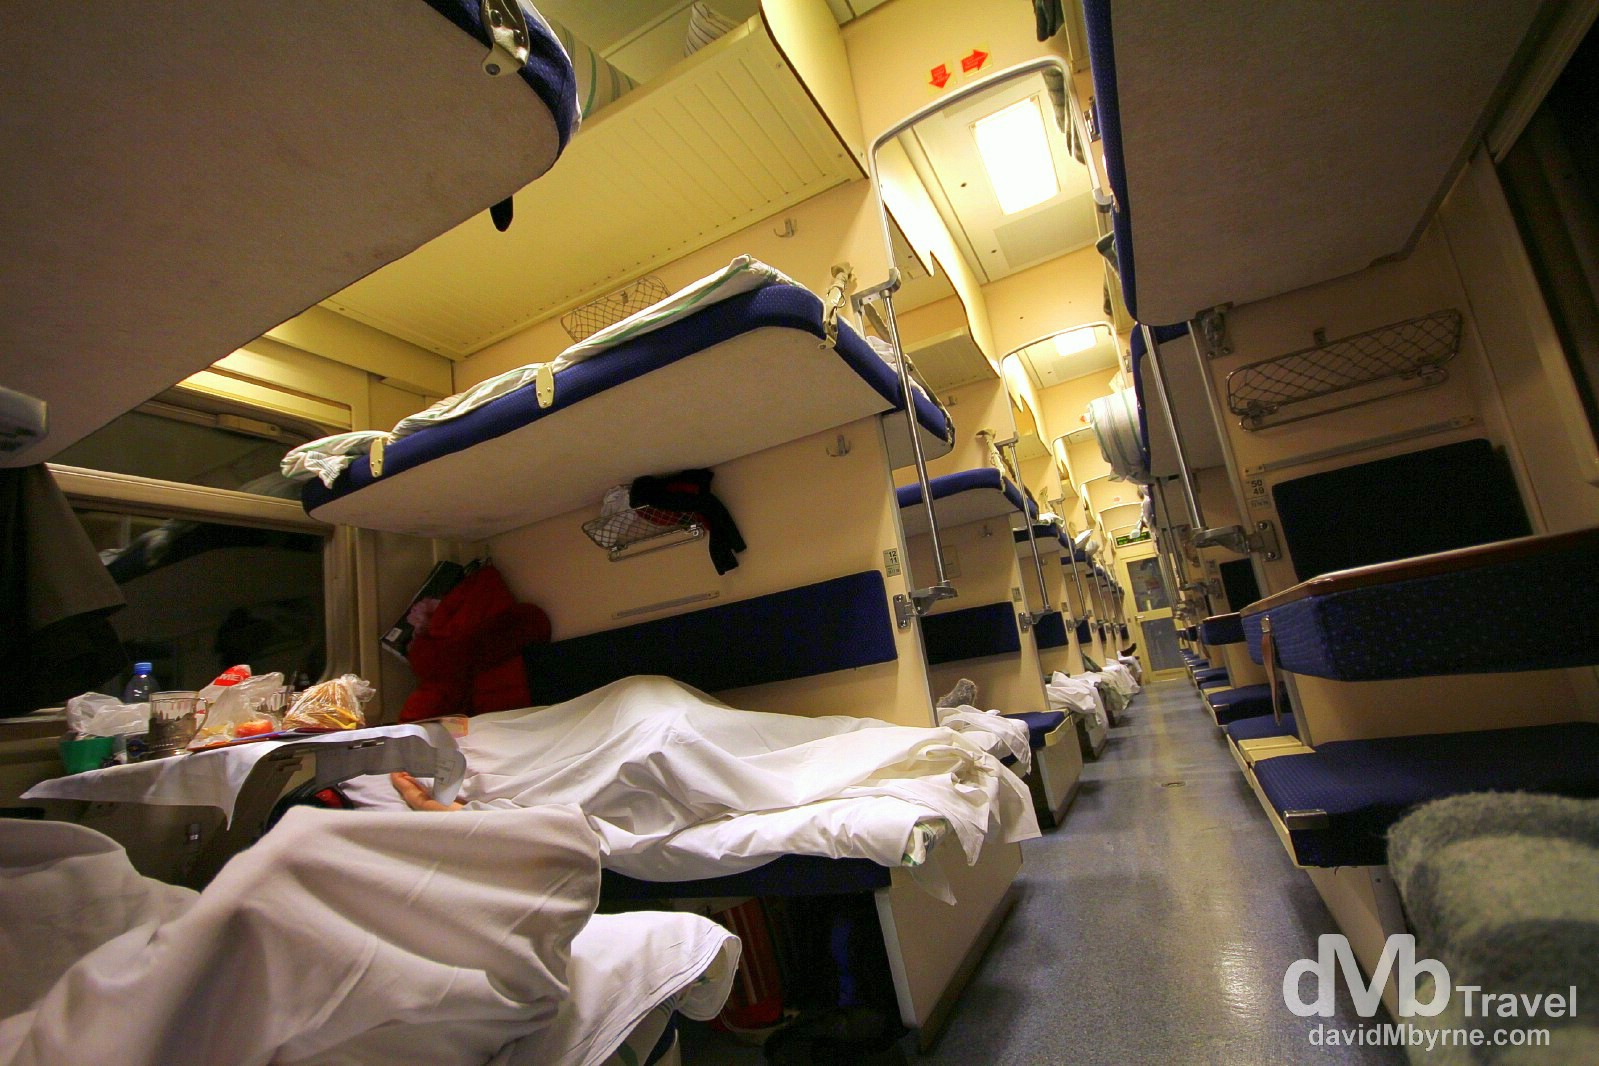 Inside the sparsely populated 3rd class/platzkart carriage number 2 of train 037. 3rd class/platzkart is an open-plan dormitory car with 54 bunks per carriage arranged in open compartments of 4 berths - 2 up/2 down - on one side (left of the picture) and 2 berths - 1 up/1 down - along the carriage wall on the other side of the aisle (right of the picture). Perfect for the budget-conscious traveller; the fare for this 48 hour+, 3,215 kilometre trip, was 3,900 roubles (€100). This carriage is new and half empty, which probably explains why I'm still all alone in my 4 berth compartment. On the train from Tomsk to Nizhny Novgorod, Russia. November 12th 2012.